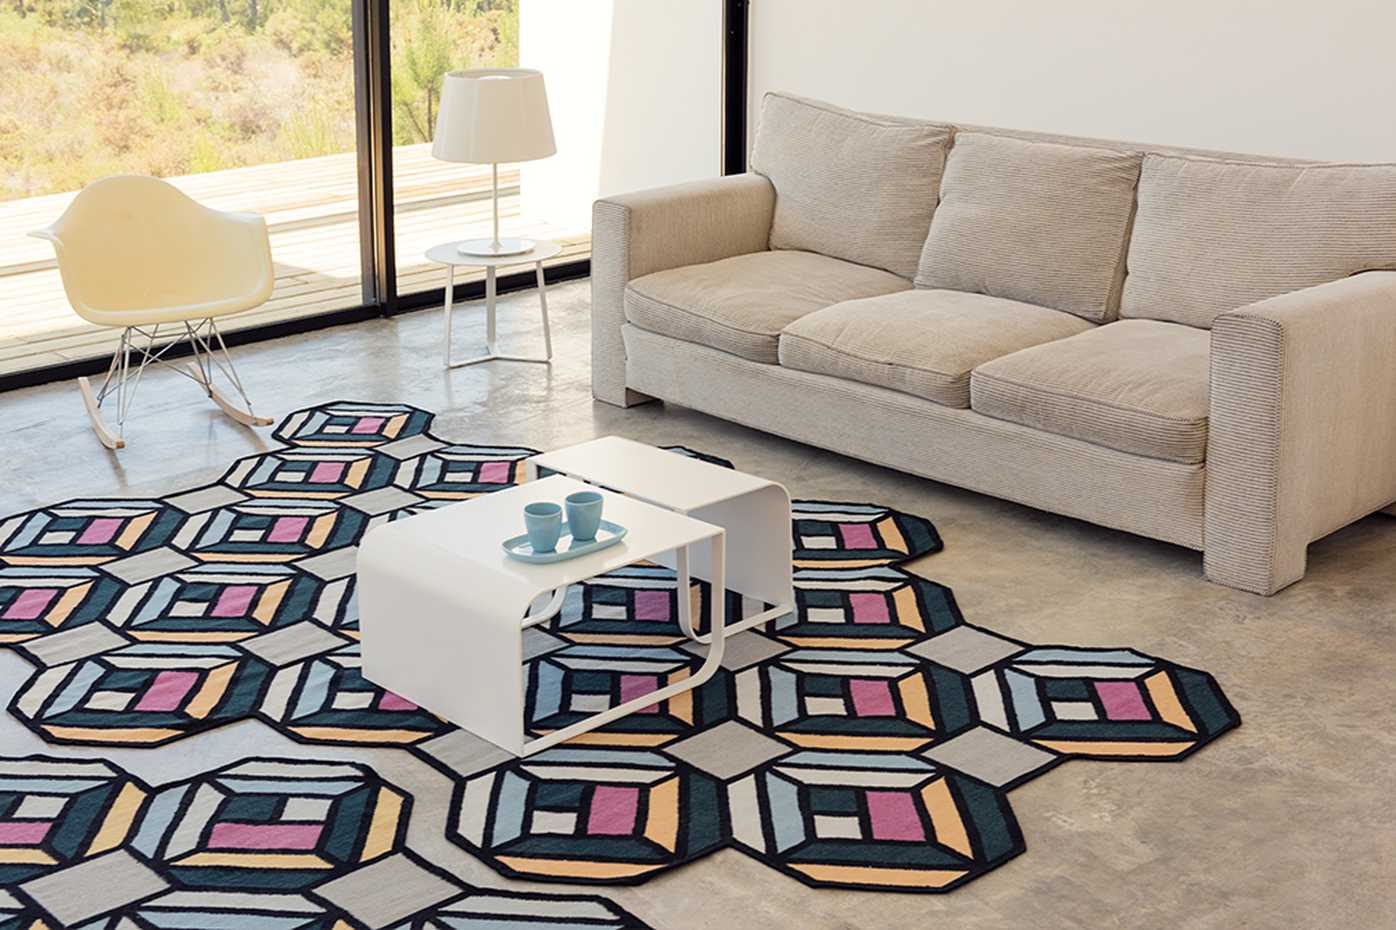 Parquet by Gan Rugs product image 2